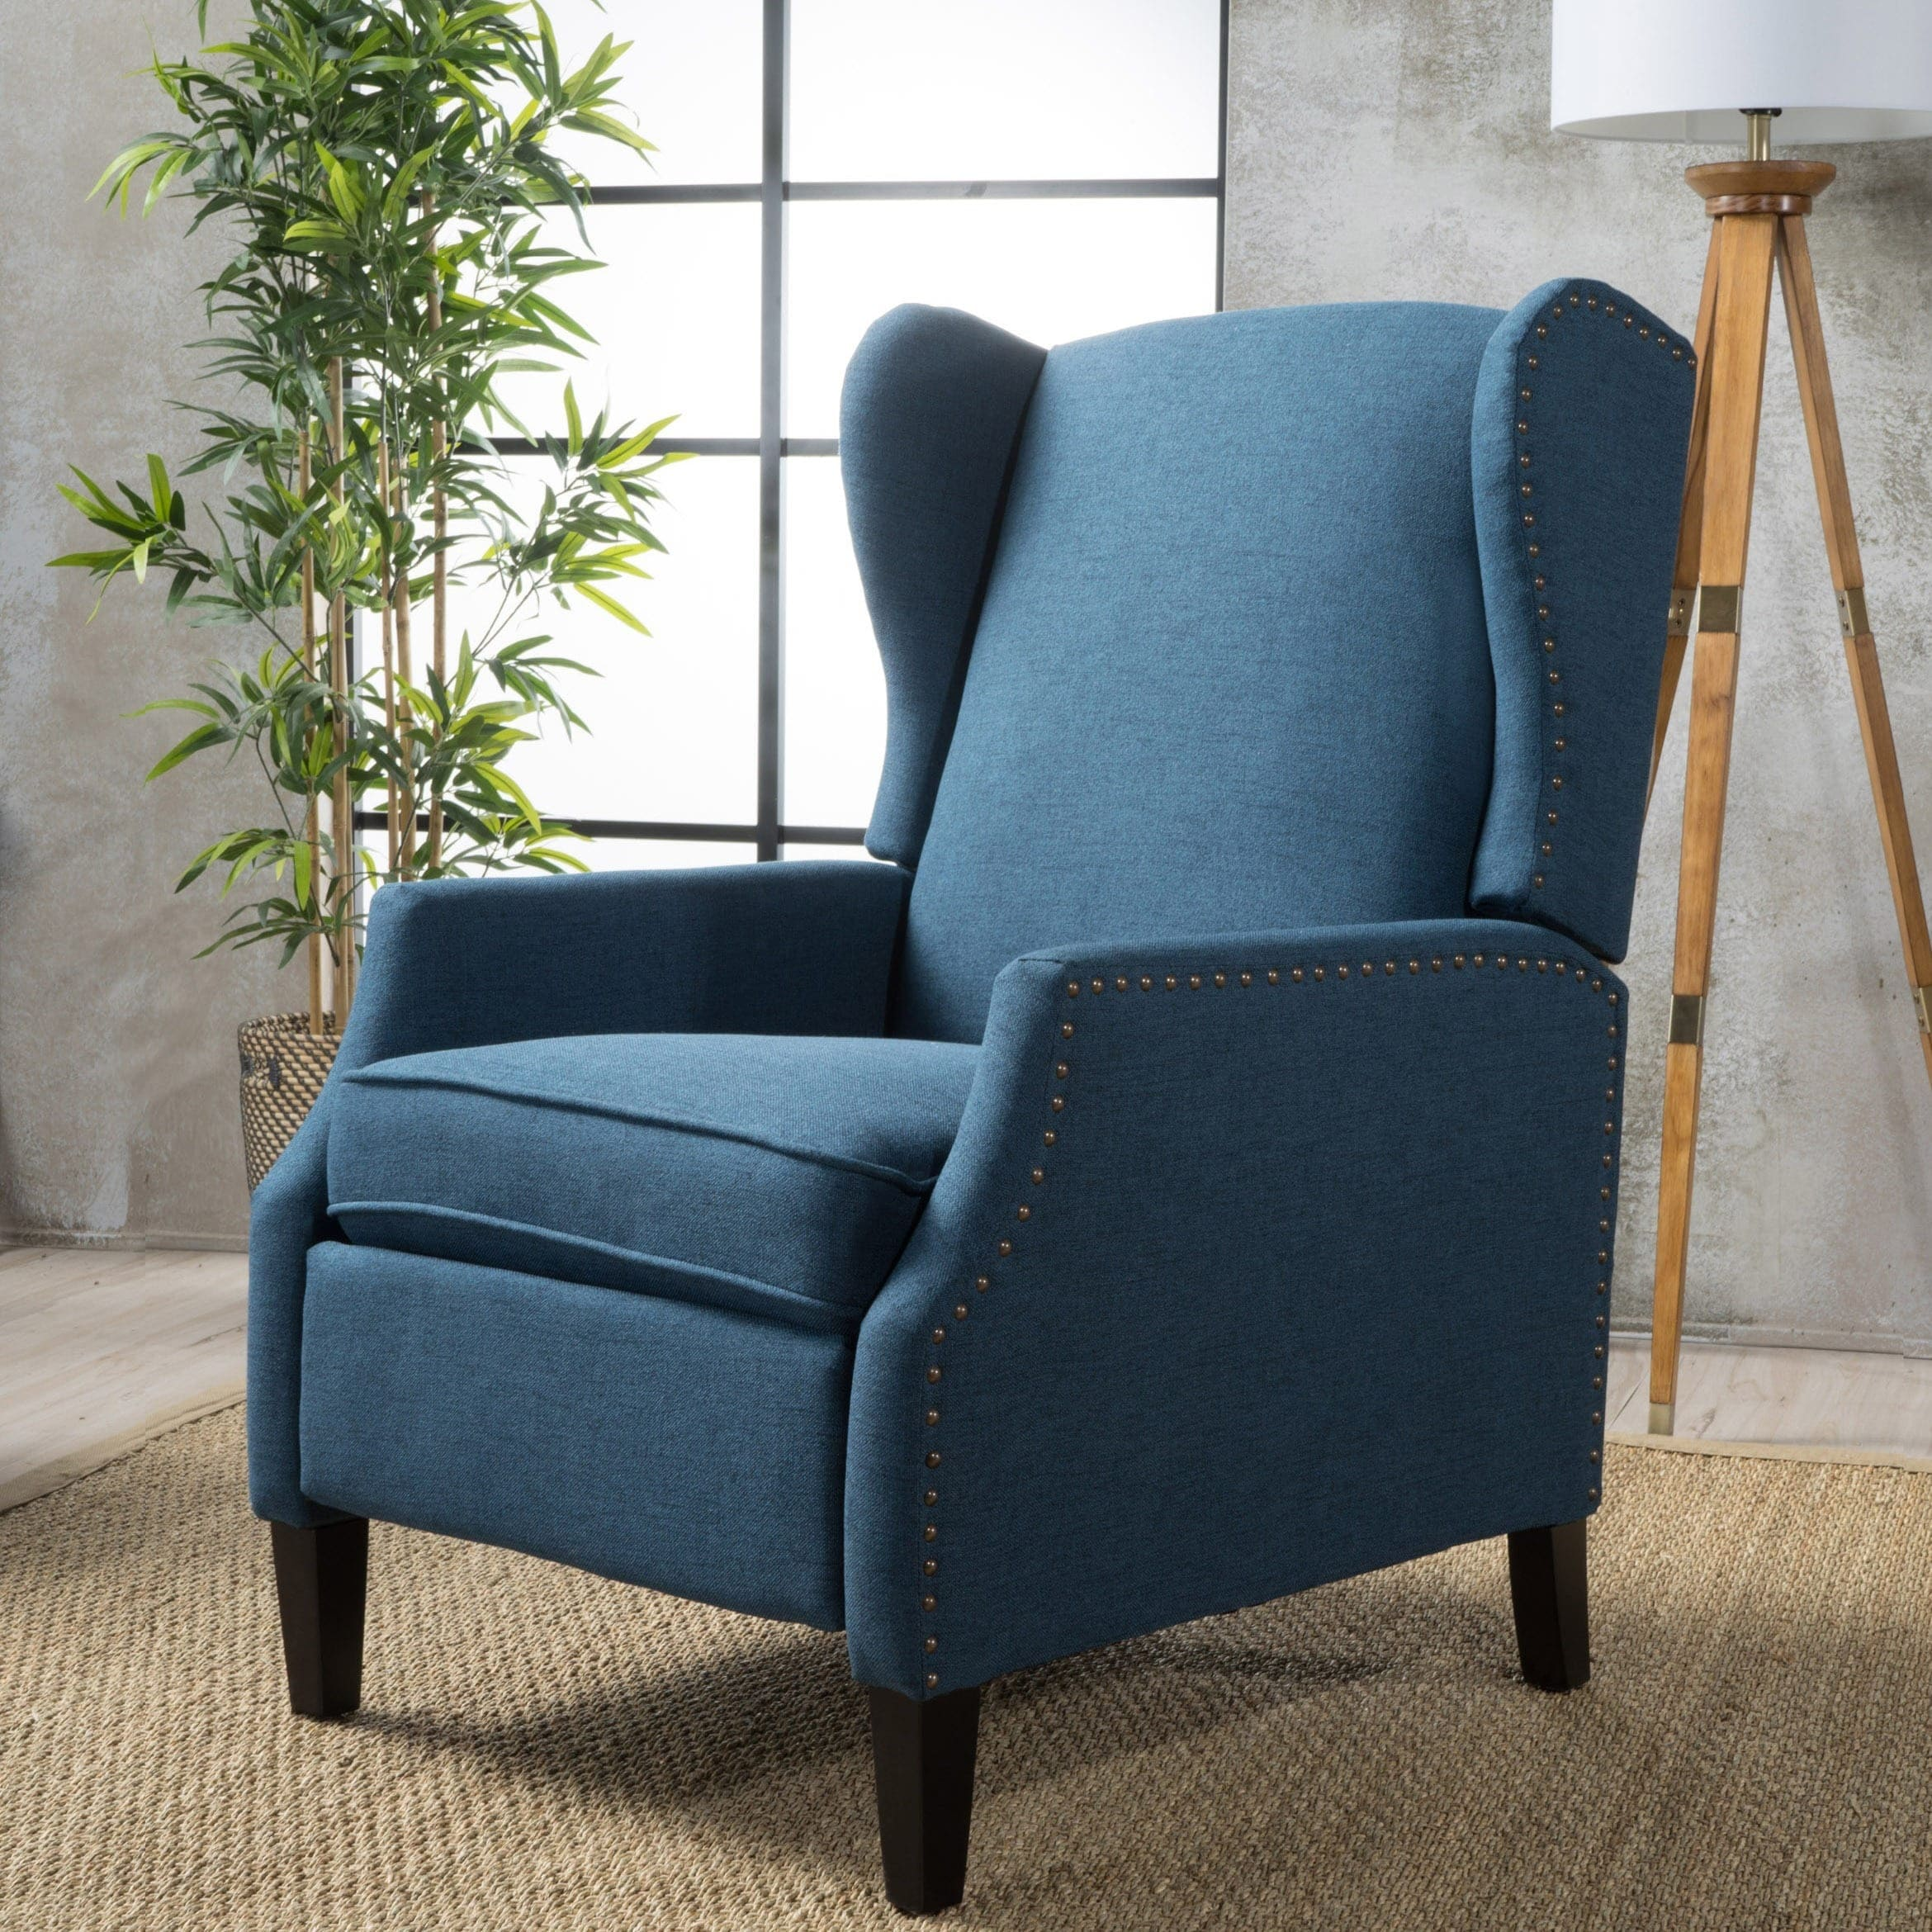 Wescott Wingback Fabric Recliner Club Chair By Christopher Knight Home On Sale Overstock 20603806